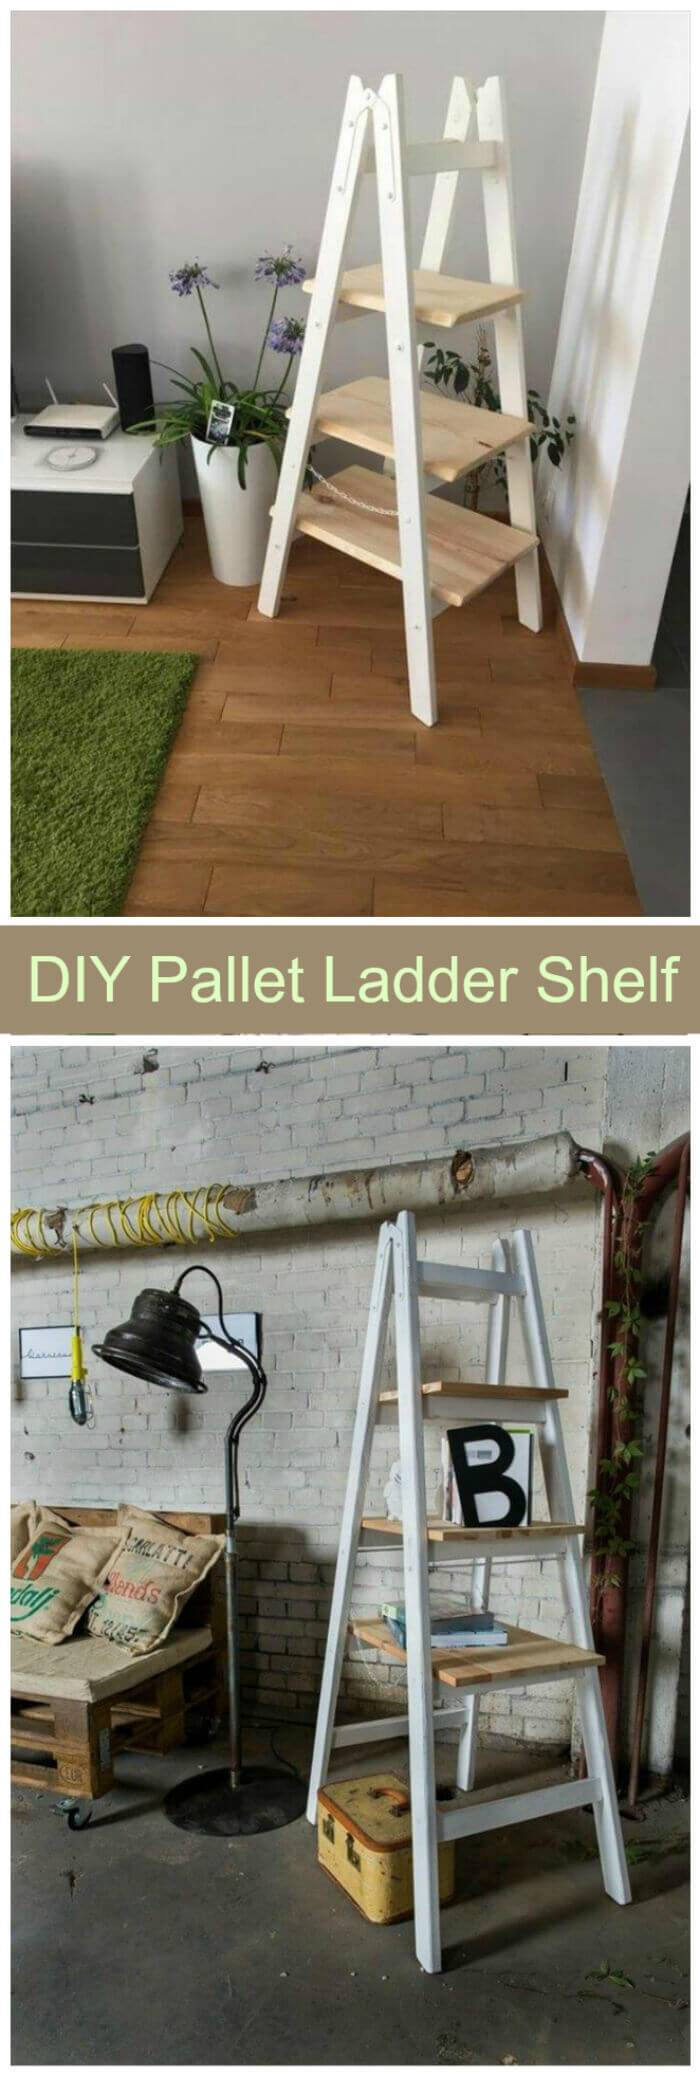 DIY Pallet Ladder Shelf